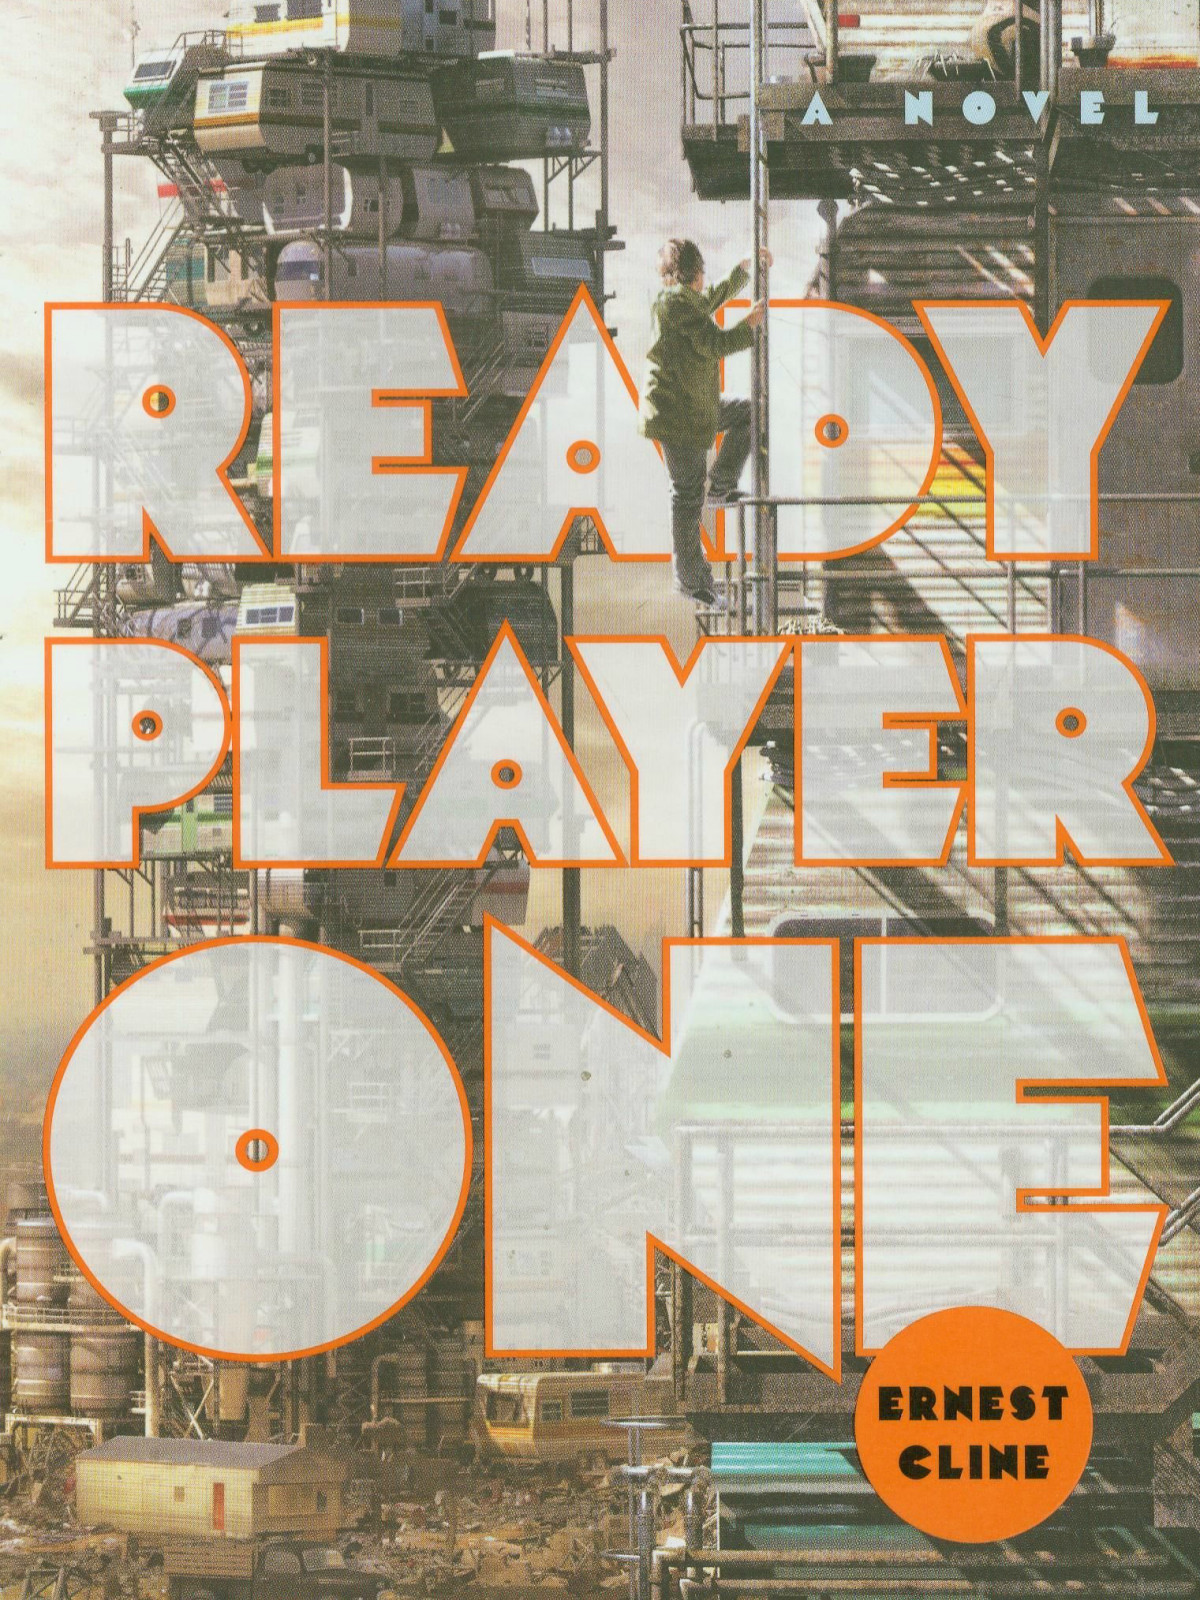 Ready Player One by Ernest Cline book cover cropped novel